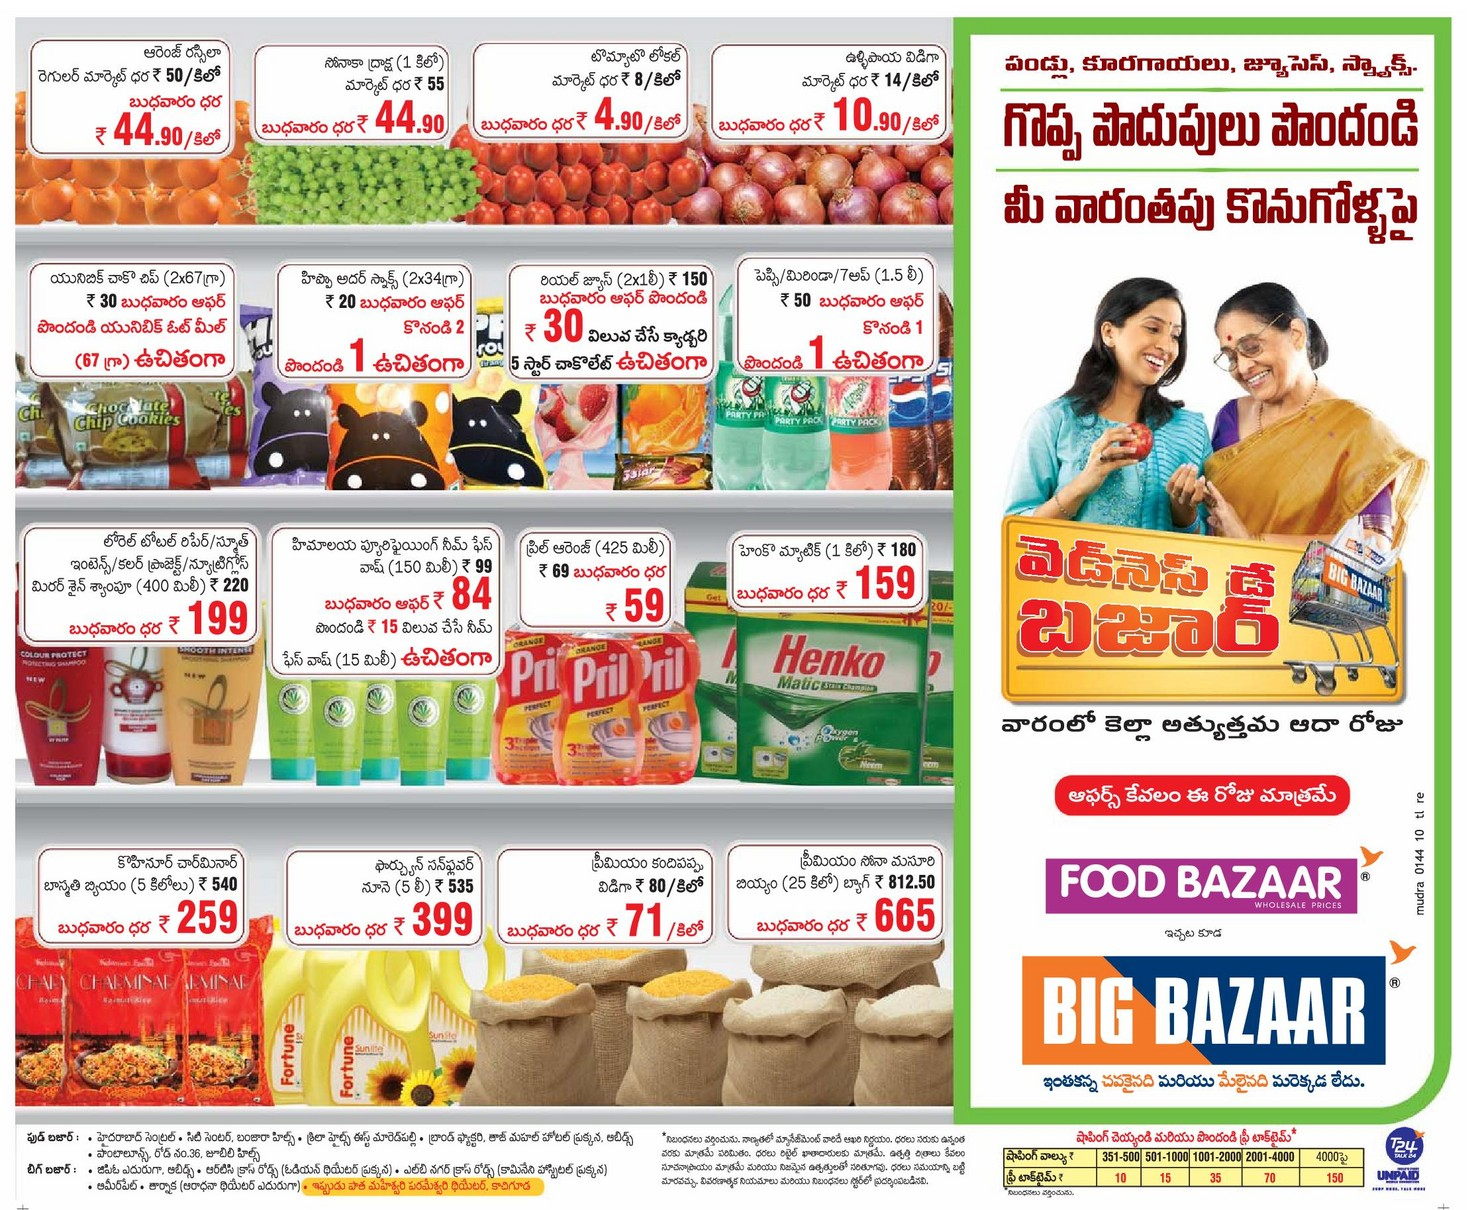 big bazaar Home needs products,home shopping products, home needs store, grocery store, kitchen set, beverage, electronic stores, grocery online, modern kitchen, kitchen accessories, tourist bags, kids.